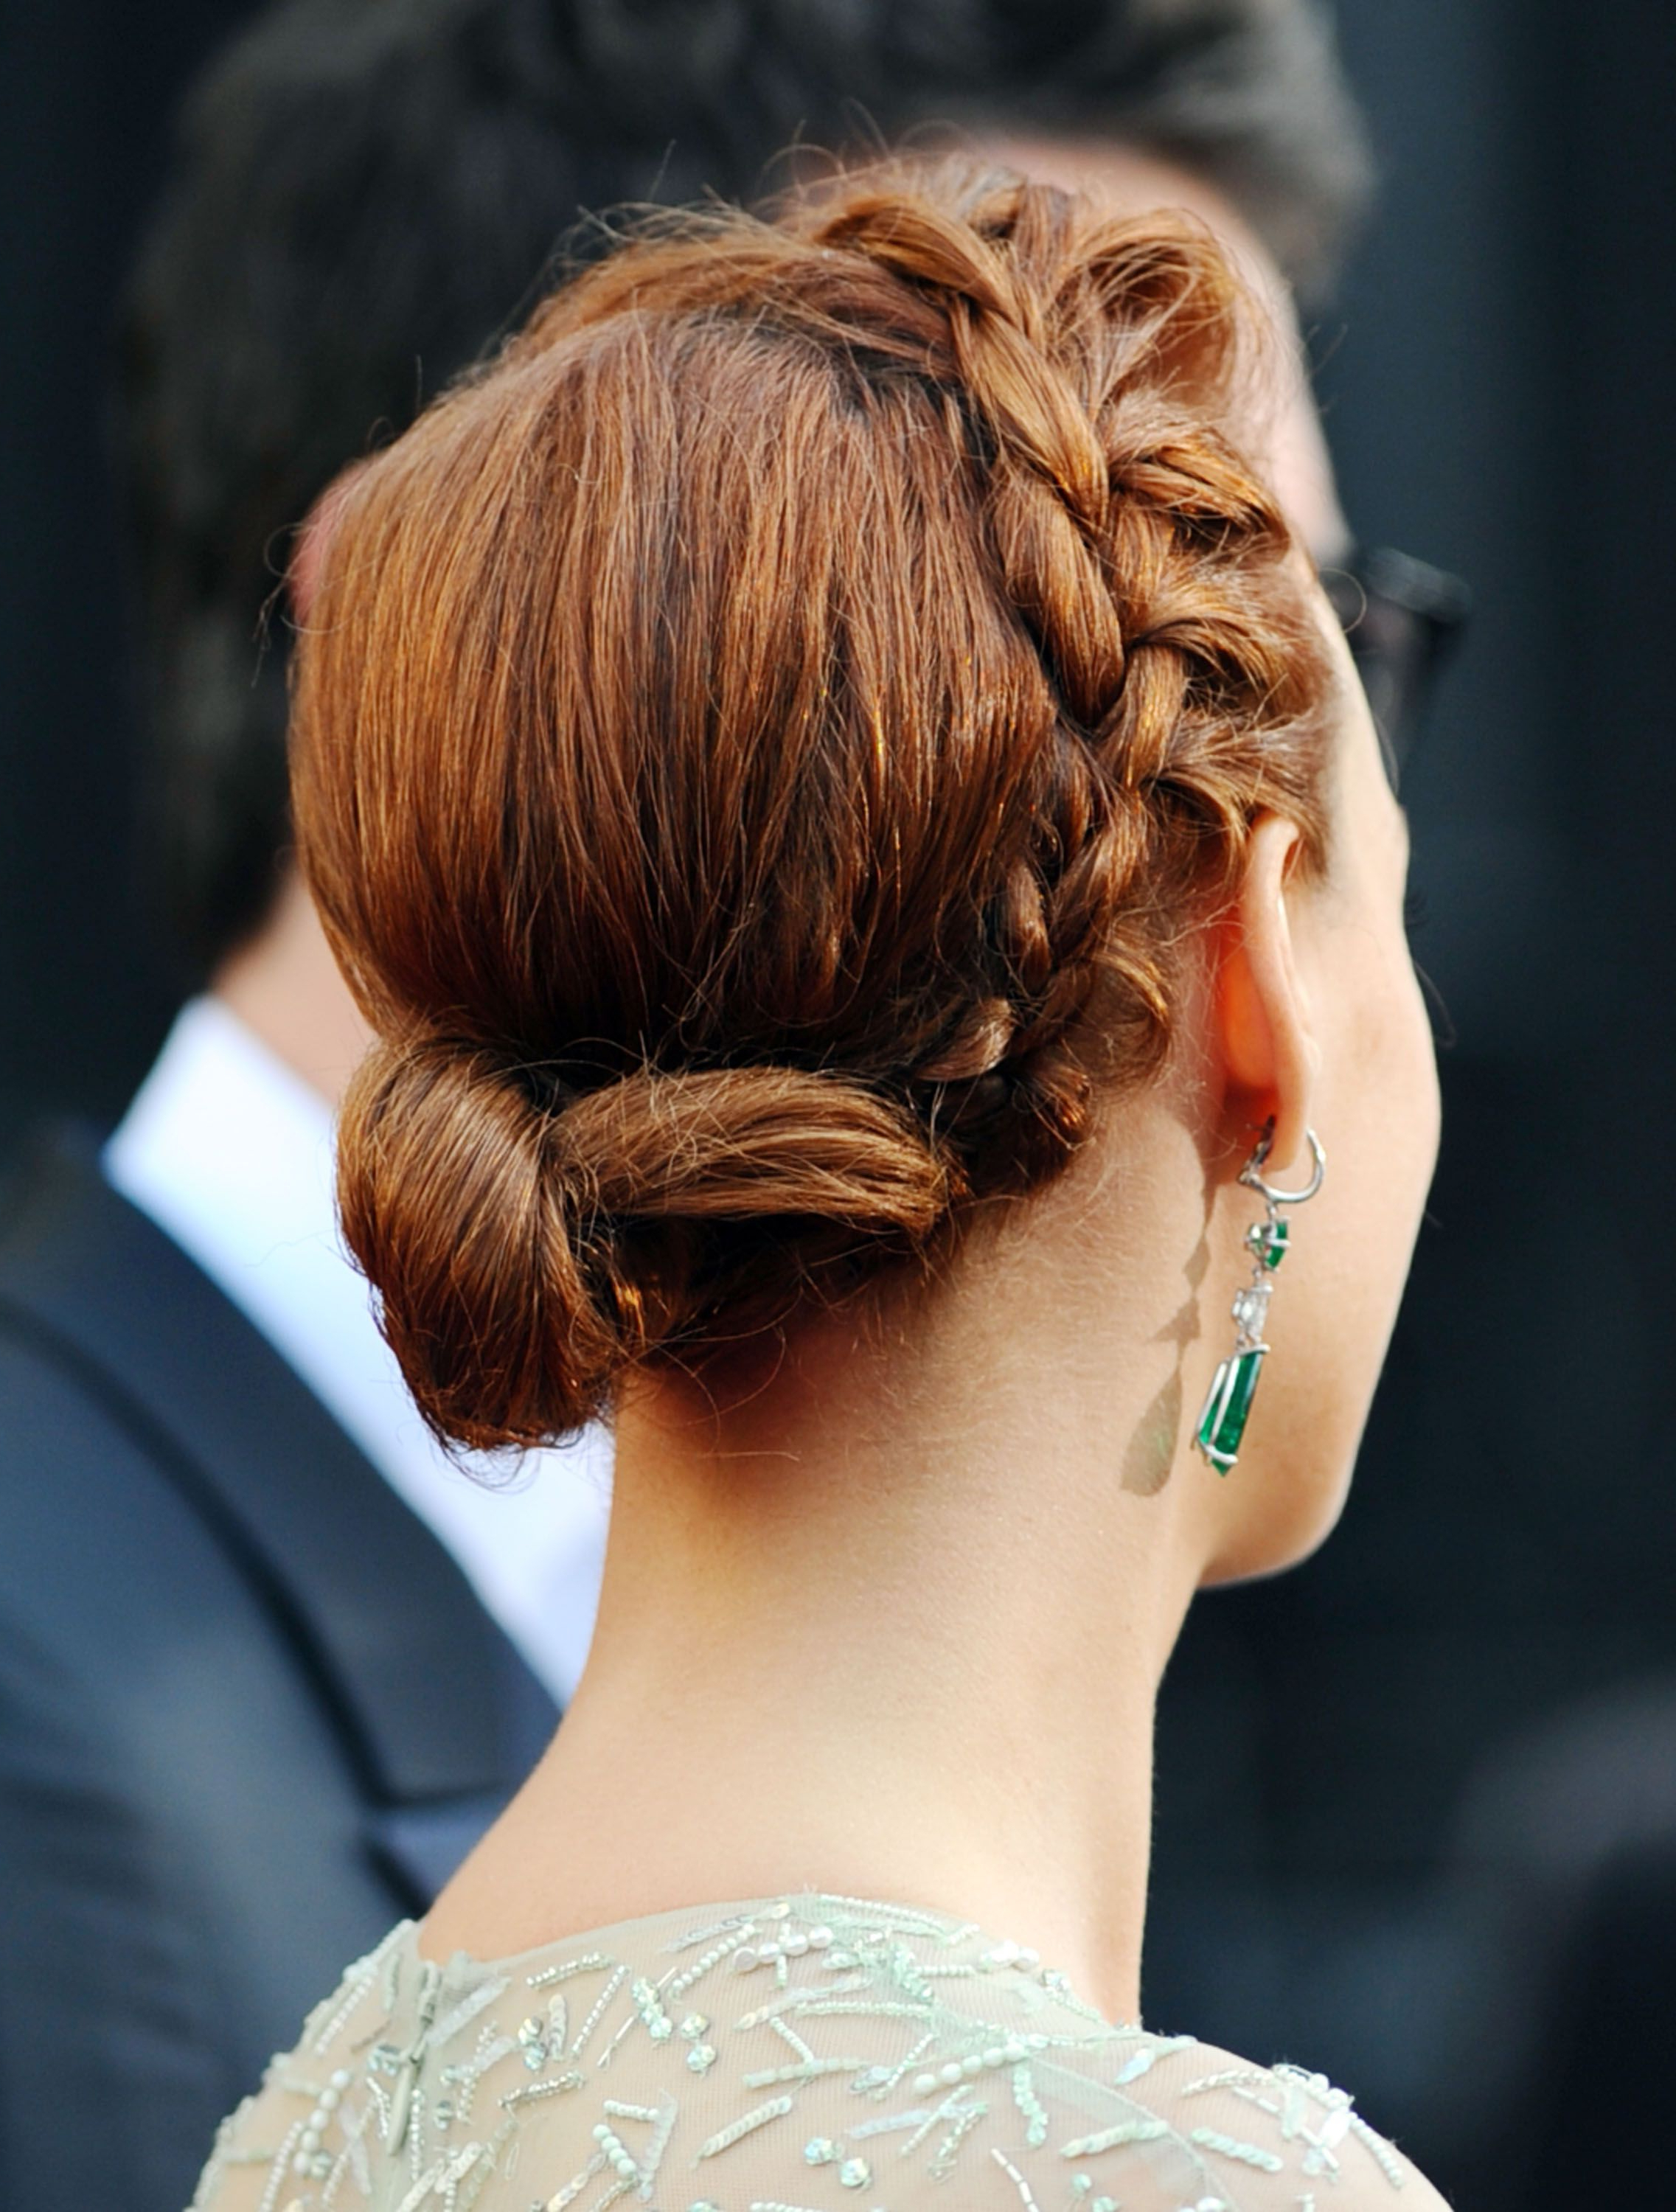 60 Easy Braided Hairstyles – Cool Braid How To's & Ideas Throughout Well Known Reverse French Braid Bun Updo Hairstyles (Gallery 15 of 20)